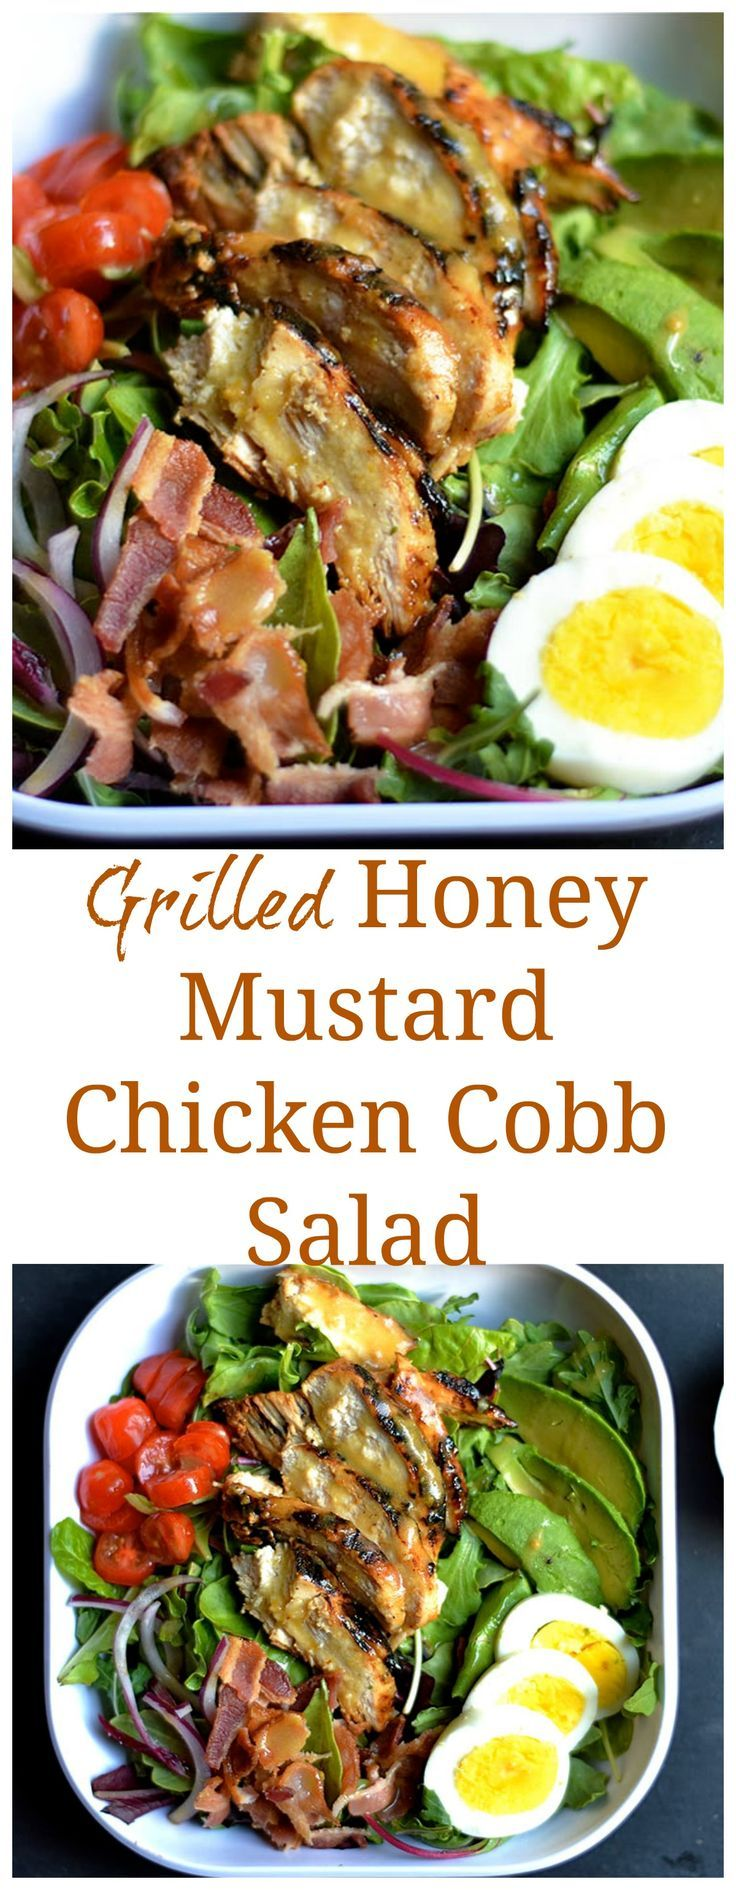 Traditional Cobb salad topped with the most delicious grilled honey mustard chicken and dressing! Paleo, & GF,